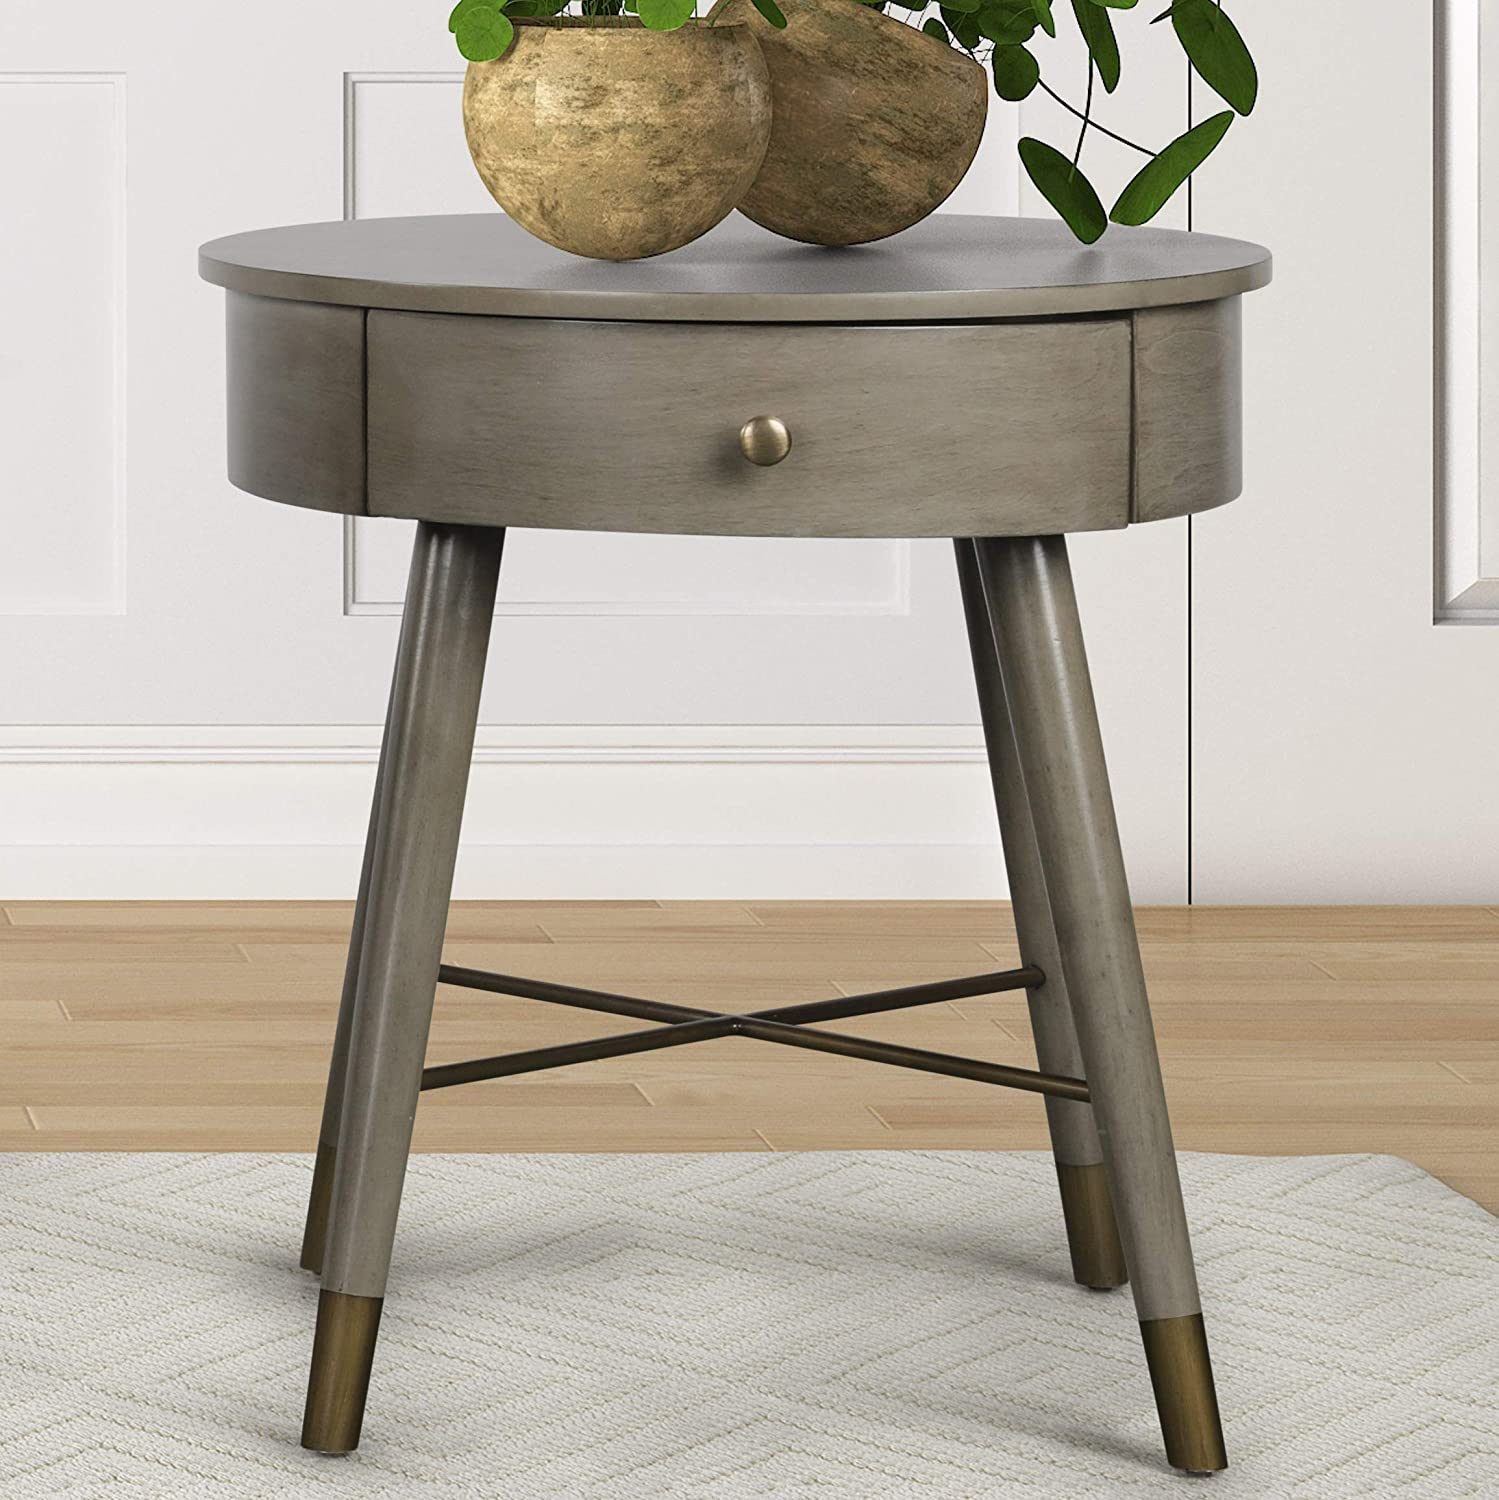 Roundhill Furniture Velsen Mid-Century Modern Wood and Metal End Table with Drawer, Antique Gray